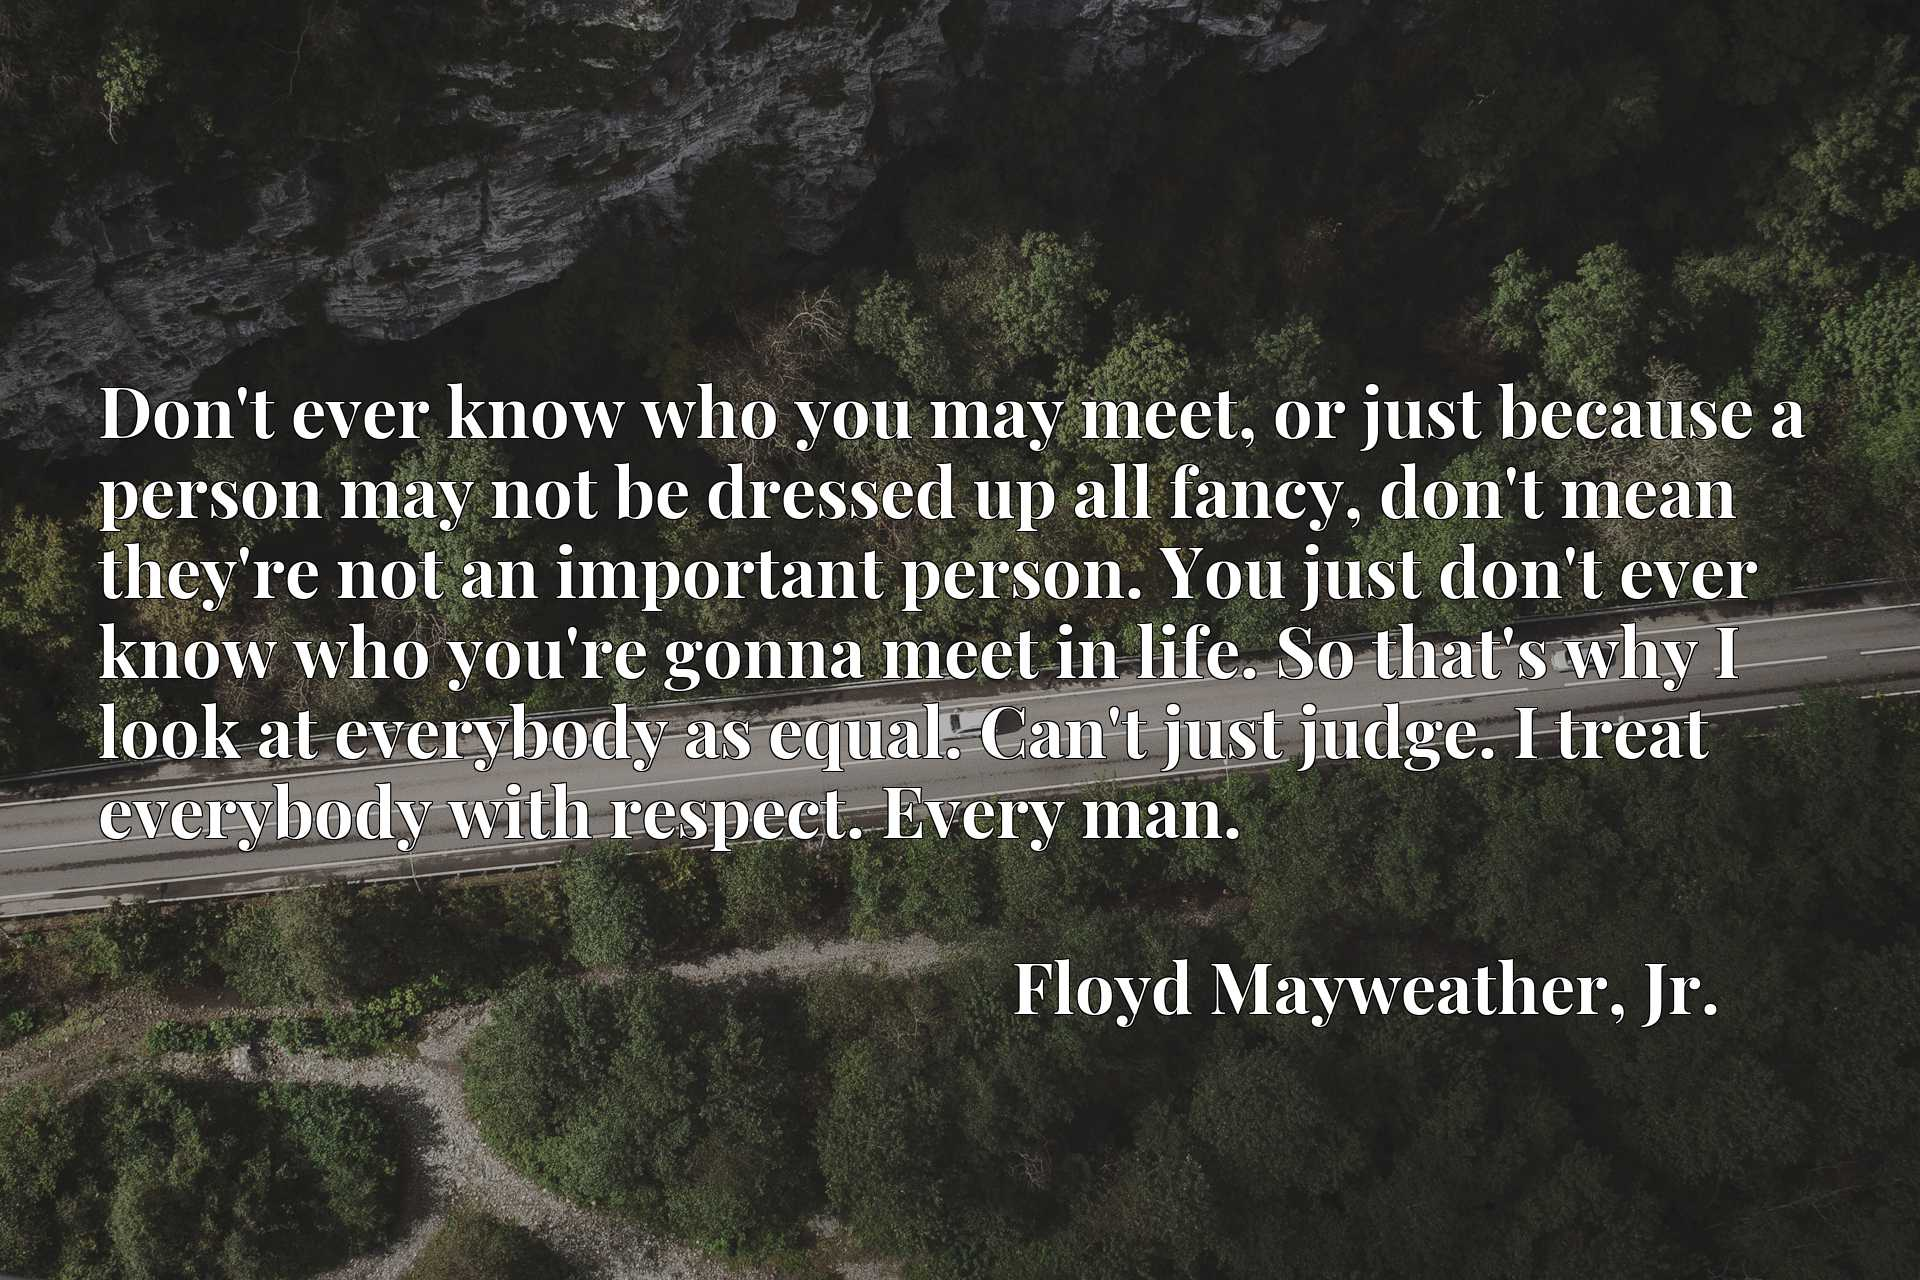 Don't ever know who you may meet, or just because a person may not be dressed up all fancy, don't mean they're not an important person. You just don't ever know who you're gonna meet in life. So that's why I look at everybody as equal. Can't just judge. I treat everybody with respect. Every man.